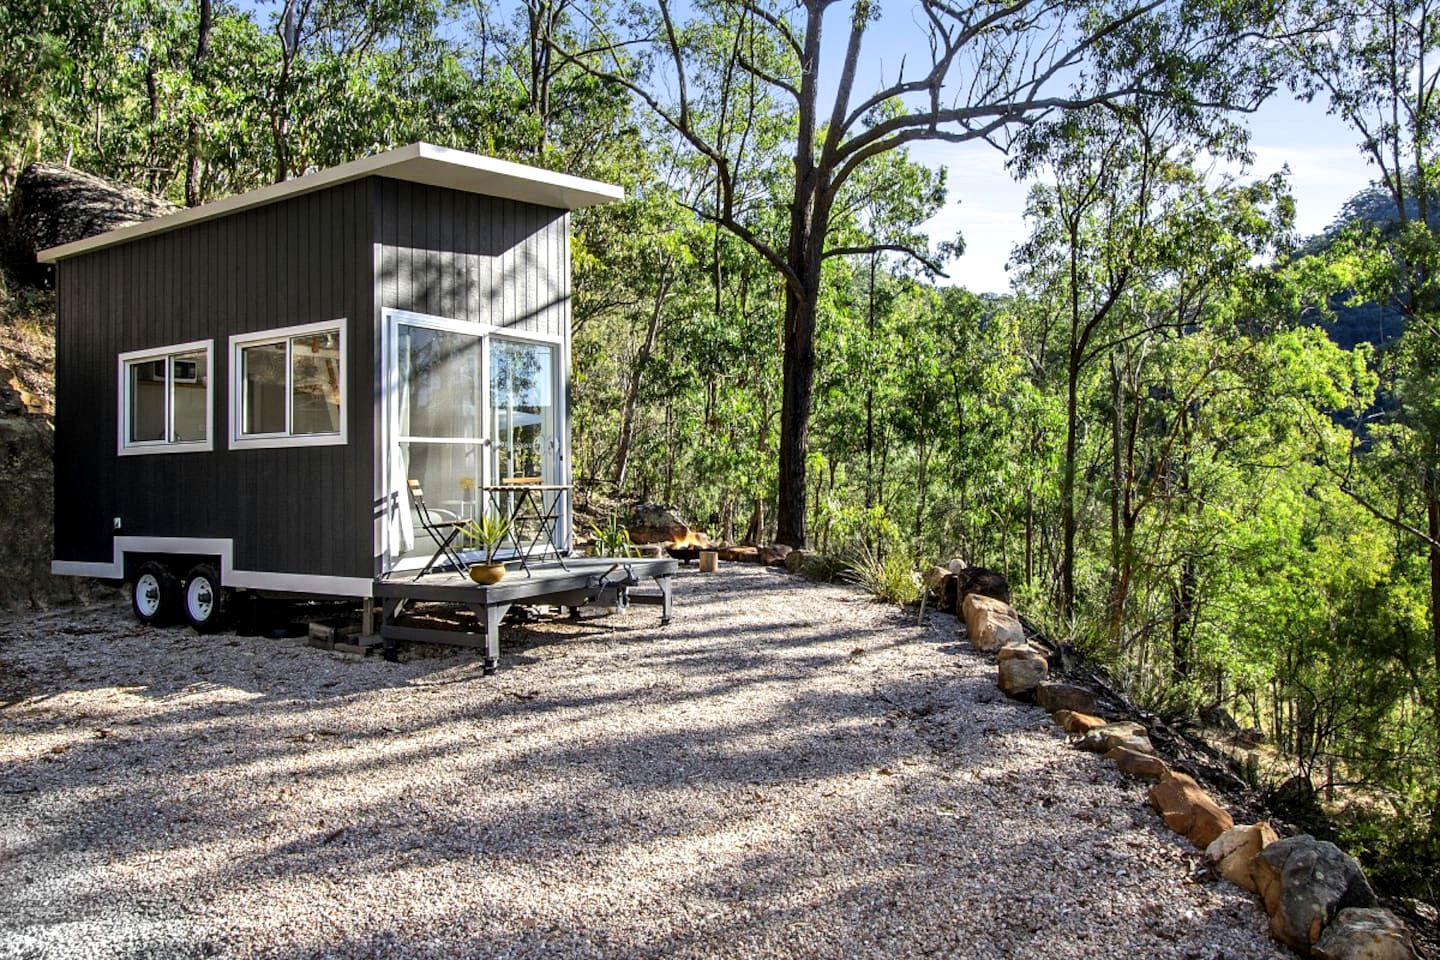 This amazing tiny house rental is perfect for a glamping getaway in NSW.